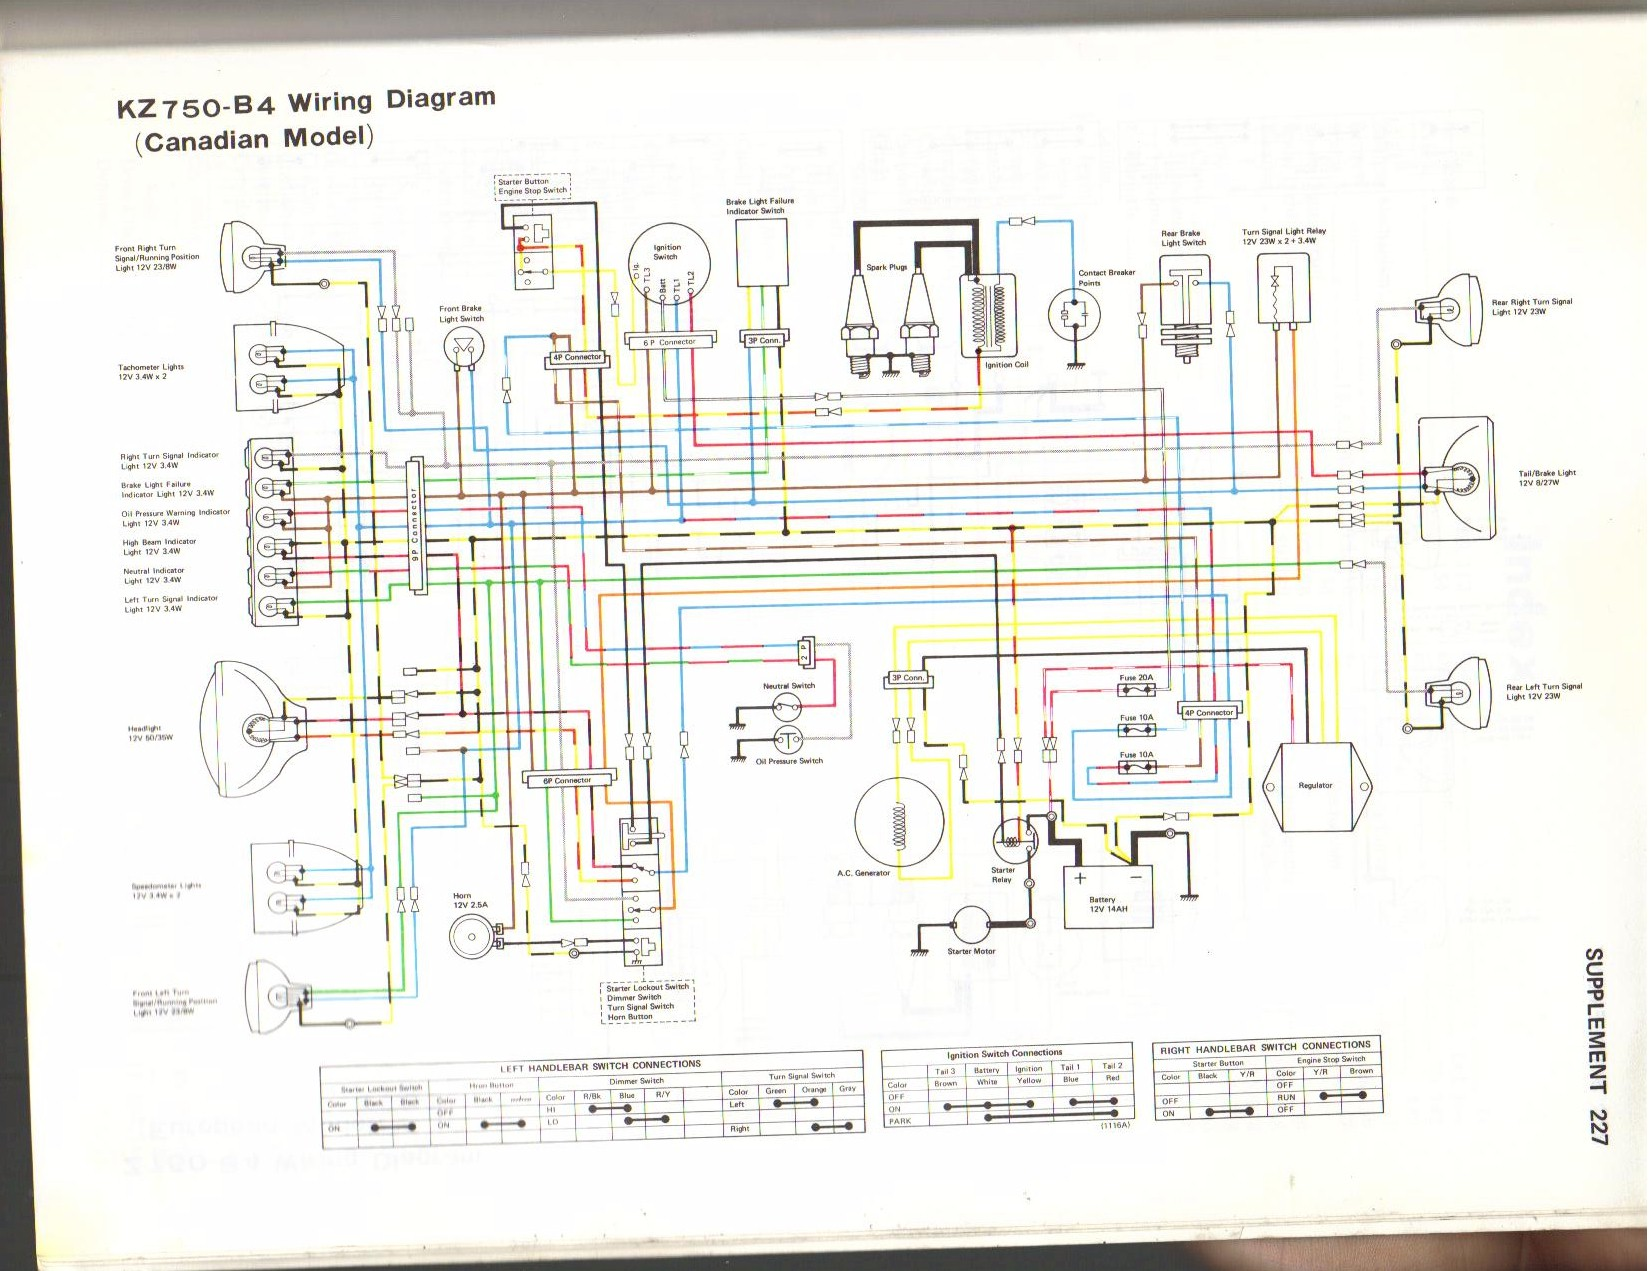 kz750b4 service manuals kz750 twin kz750 twins com 1980 kawasaki kz750 wiring diagram at virtualis.co